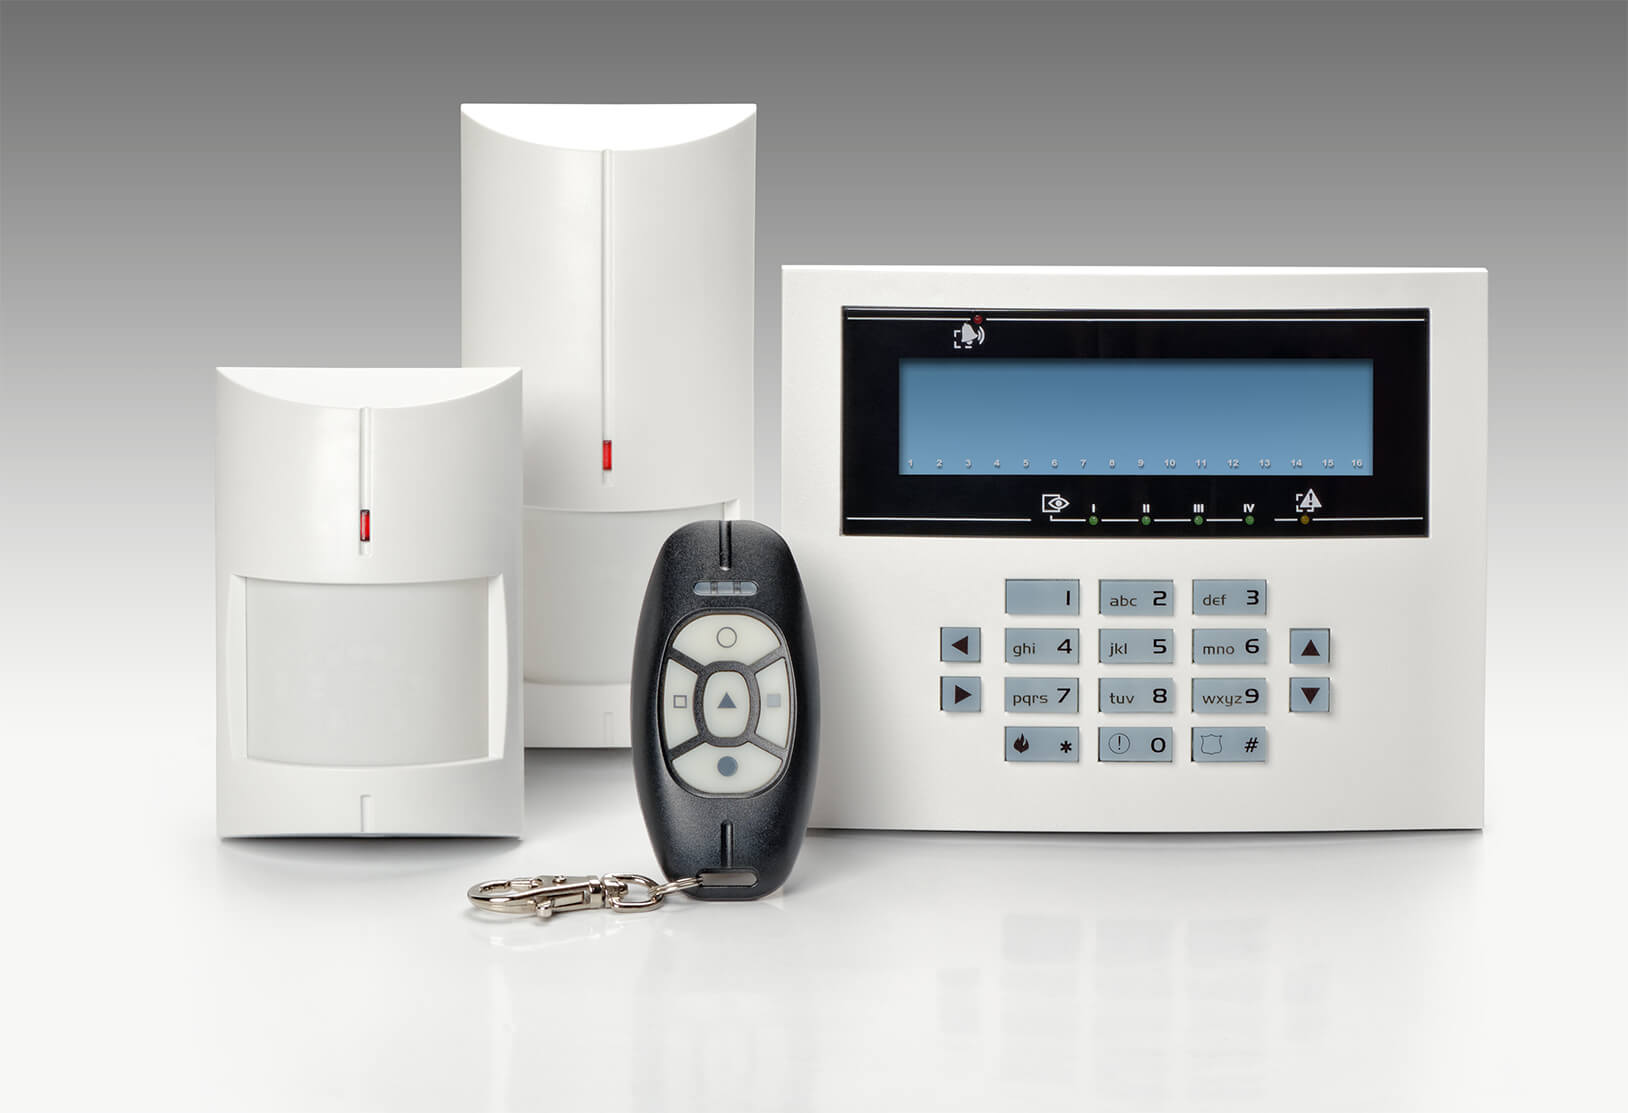 Business & Residential NACOSS Approved Burglar Alarms In East Sheen SW14 - Local East Sheen SW14 security company.Call 02078872244 - Dedicated to Safety & Security. Companies, shops and homes ..